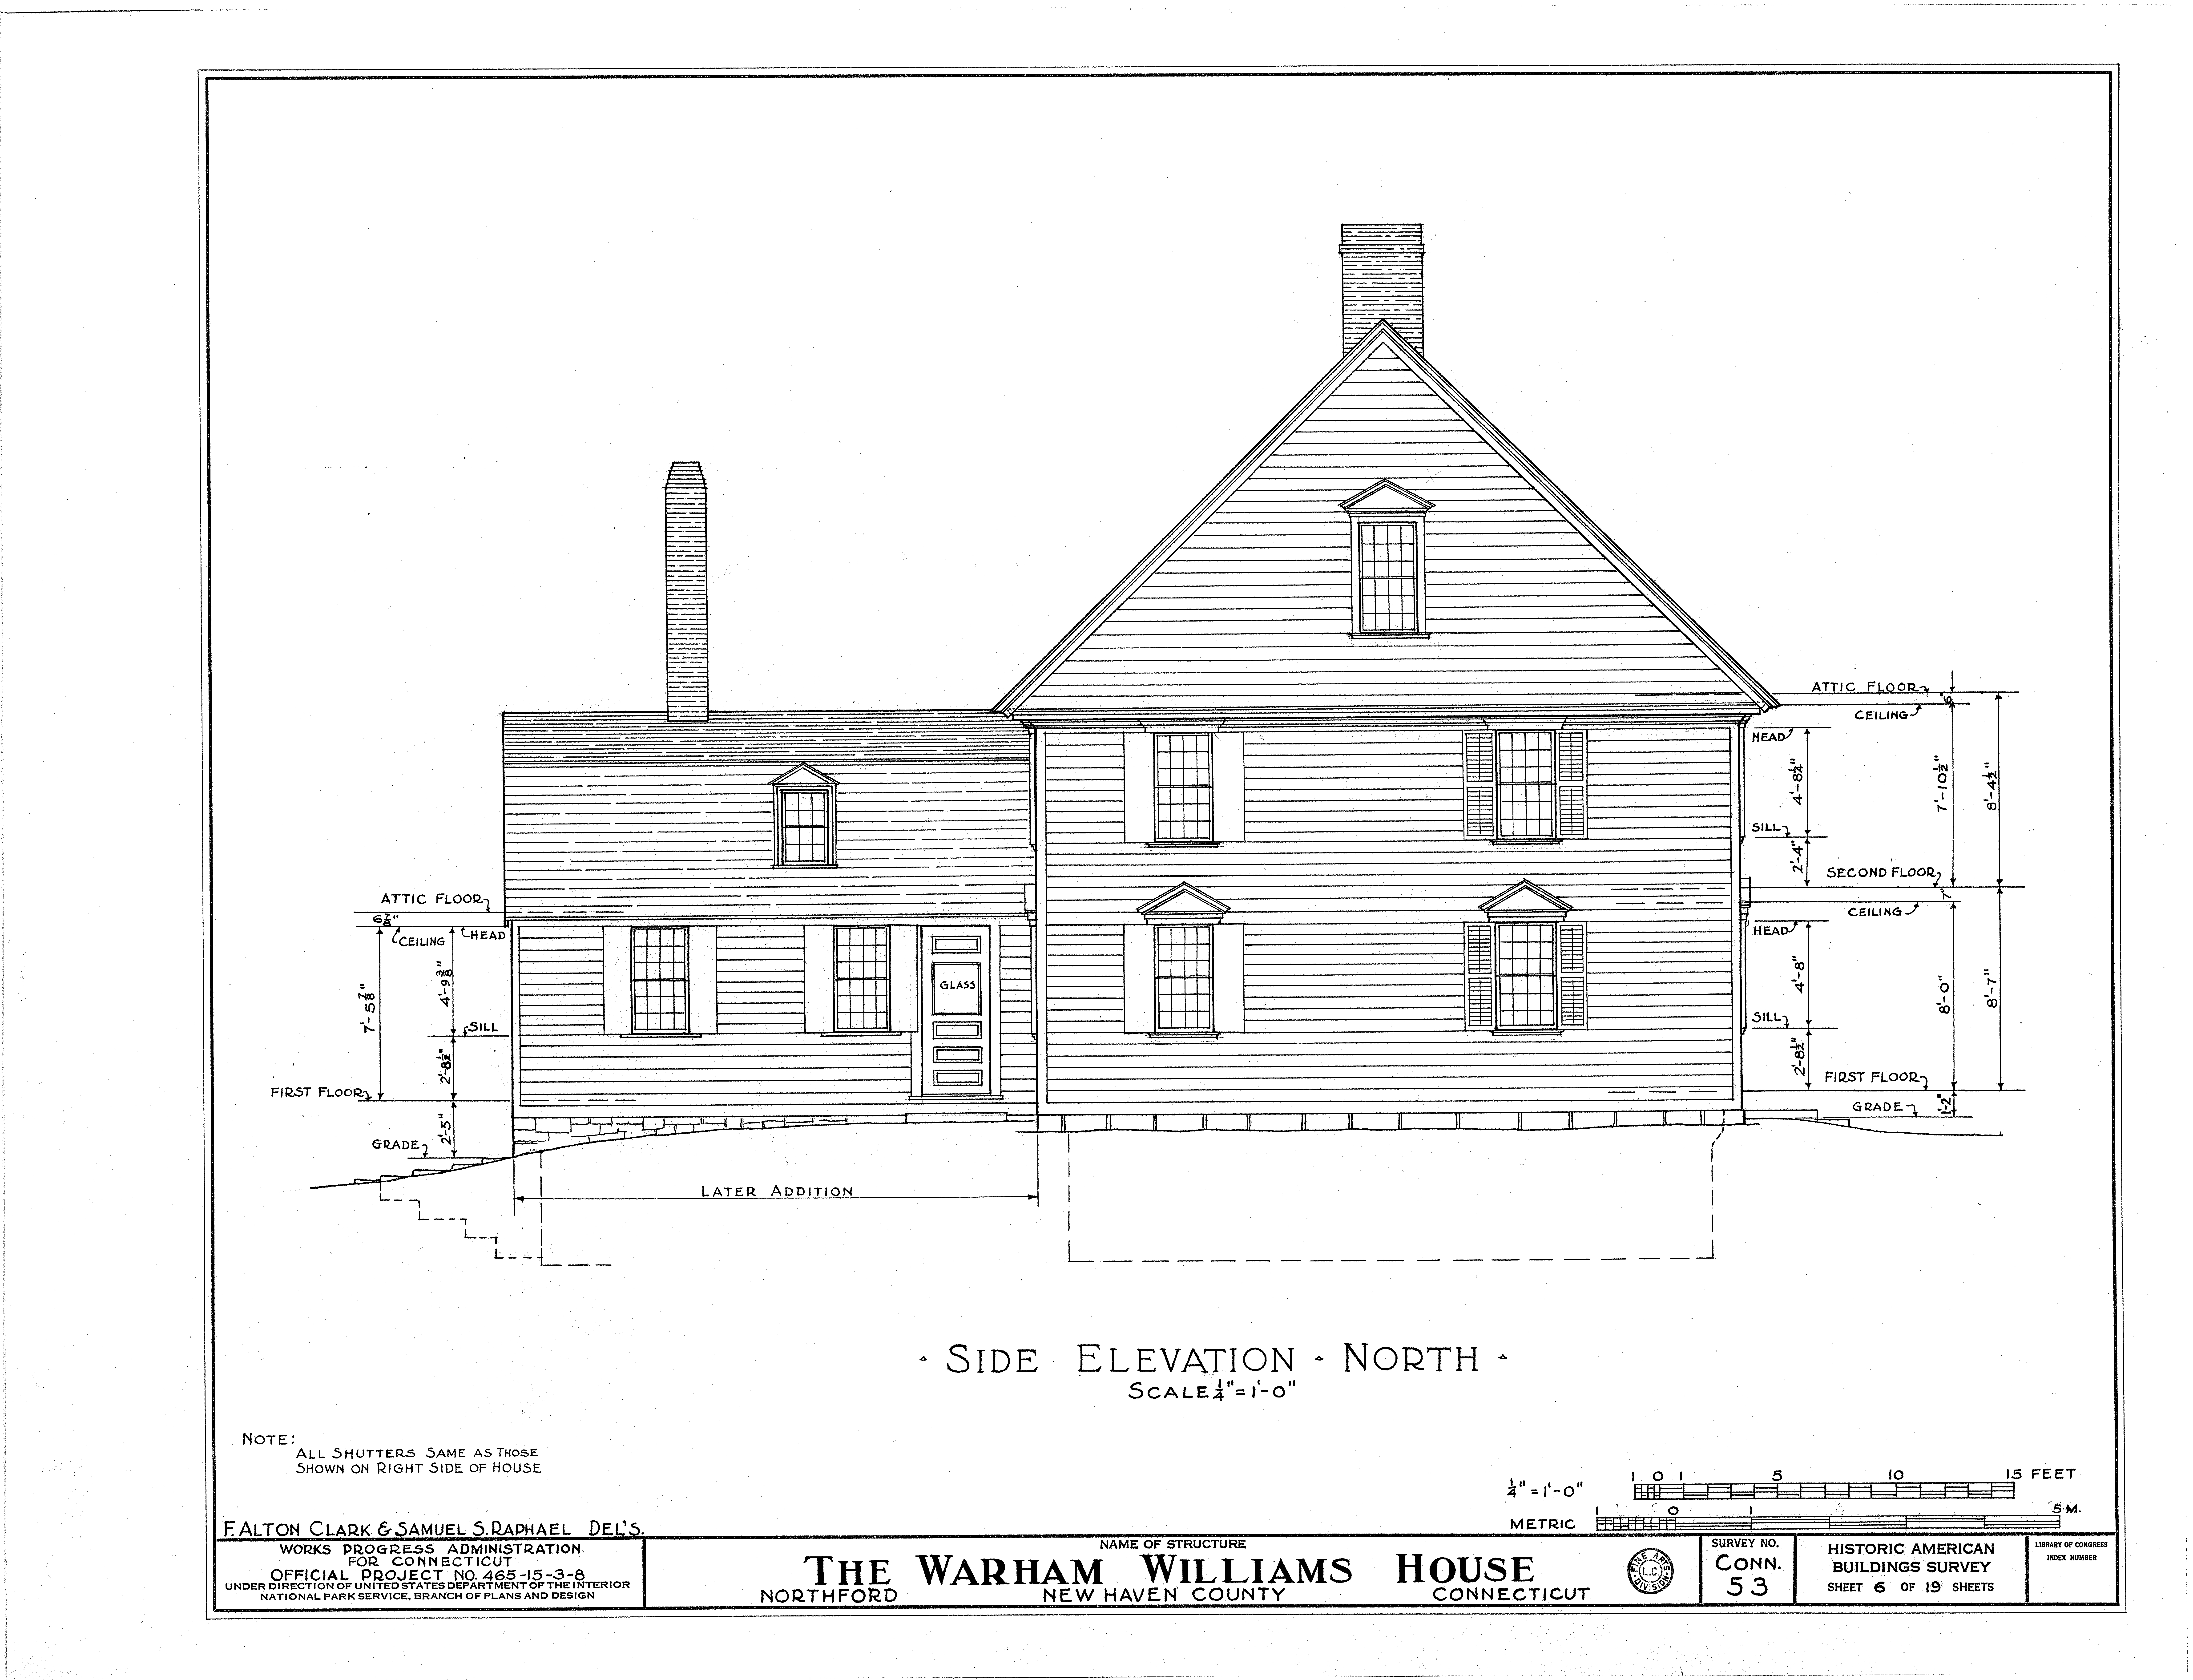 Connecticut new haven county northford - File Reverend Warham Williams House Northford New Haven County Ct Habs Conn